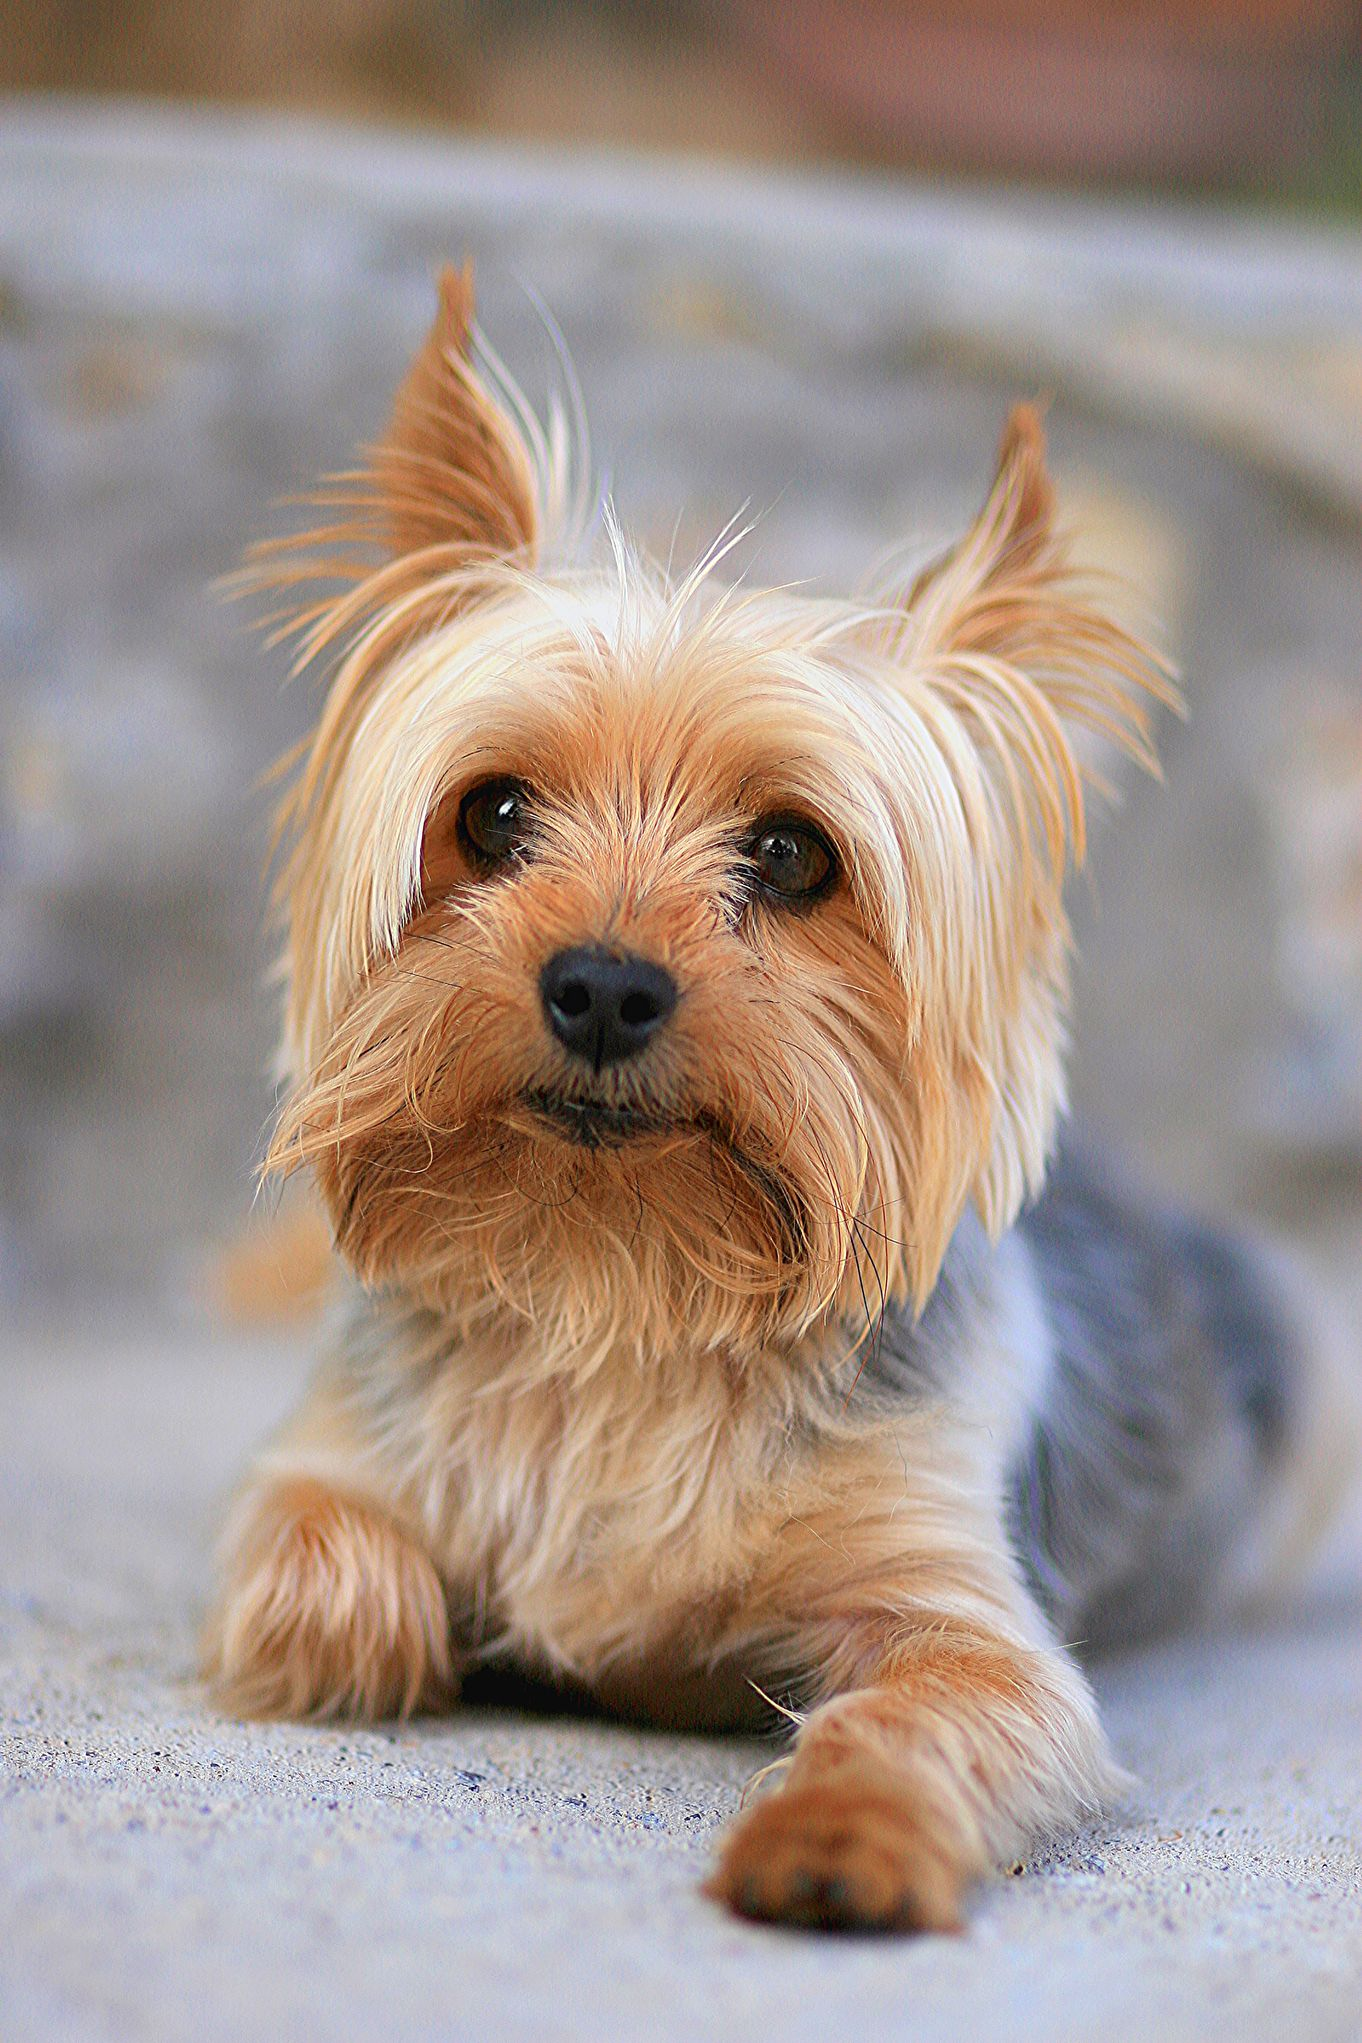 20 Best Hypoallergenic Dogs - Top Dog Breeds That Don't Shed Fur